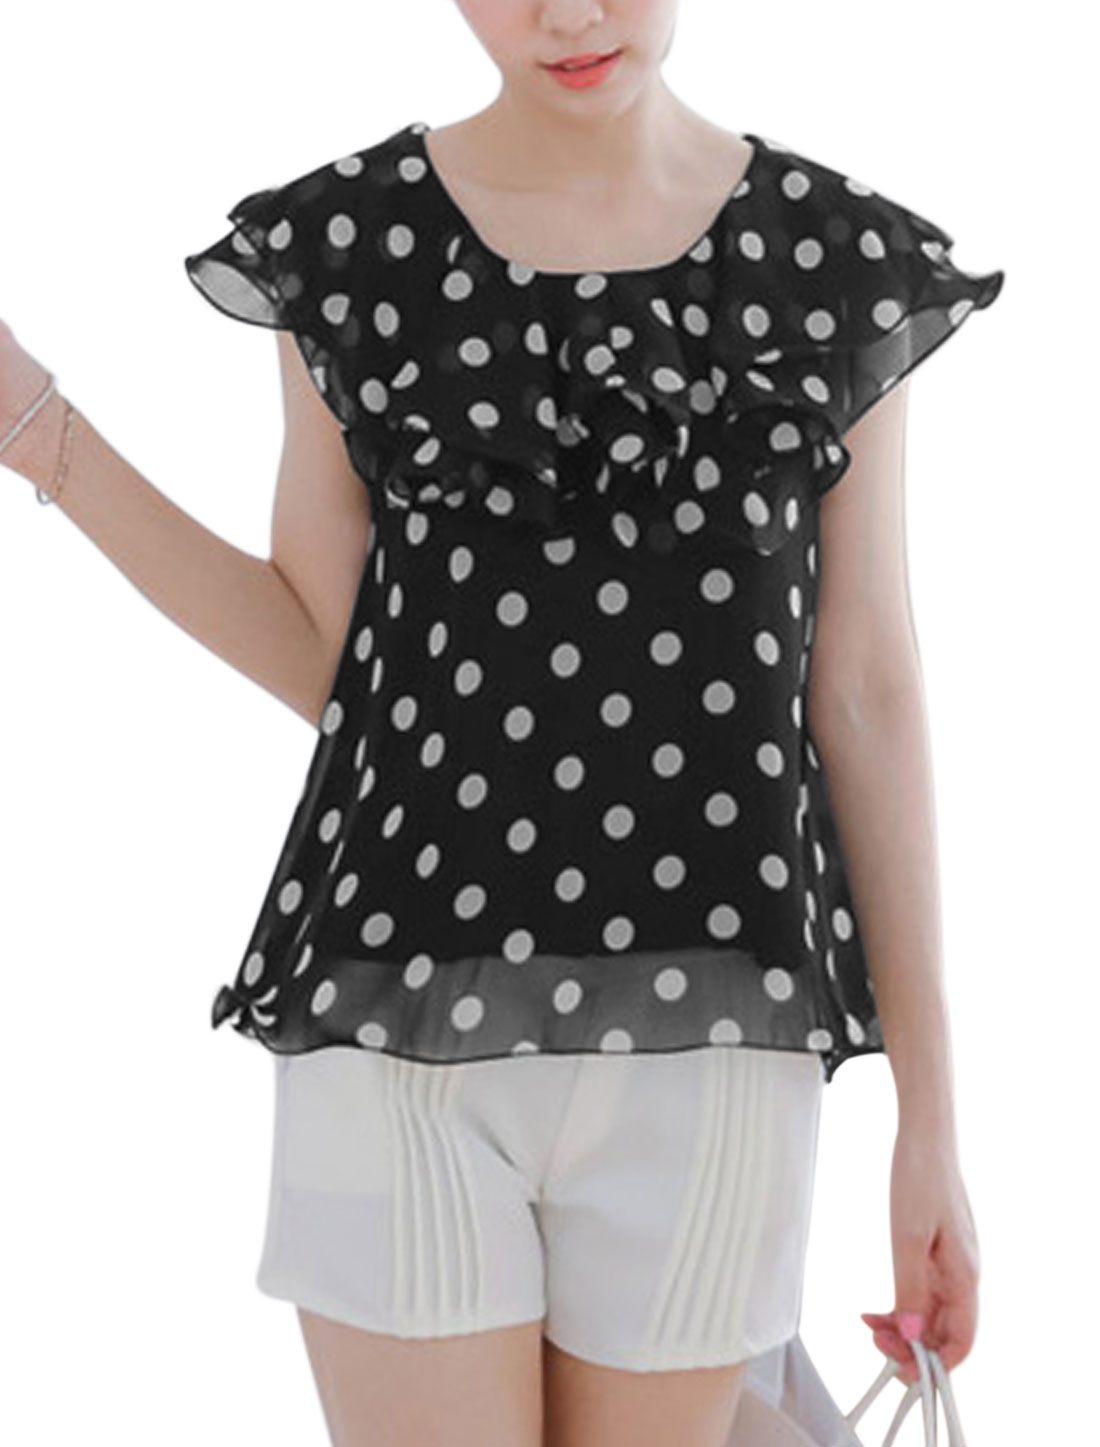 Lady's Flounce Lace-up Closure Dots Print Chiffon Blouse Black XS